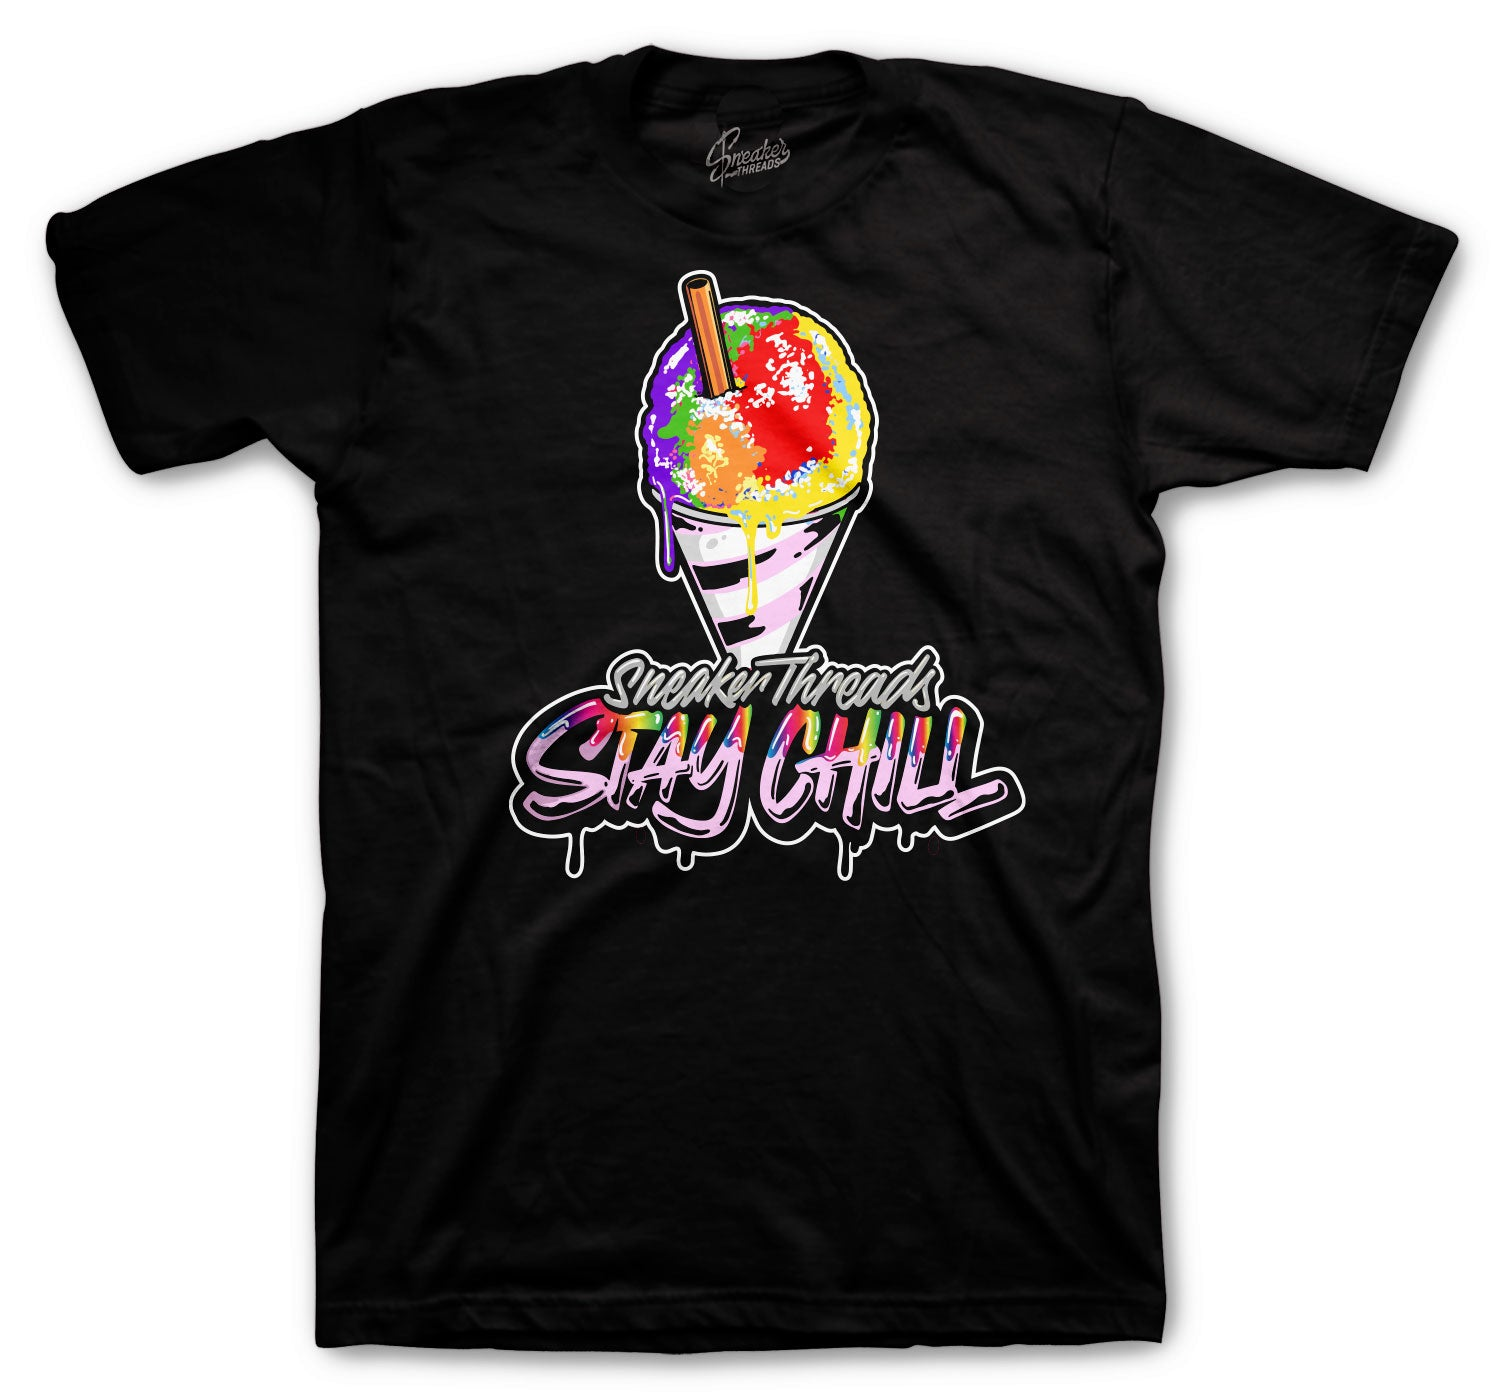 Jordan 1 Balvin Shirt -  Stay Chill - Black